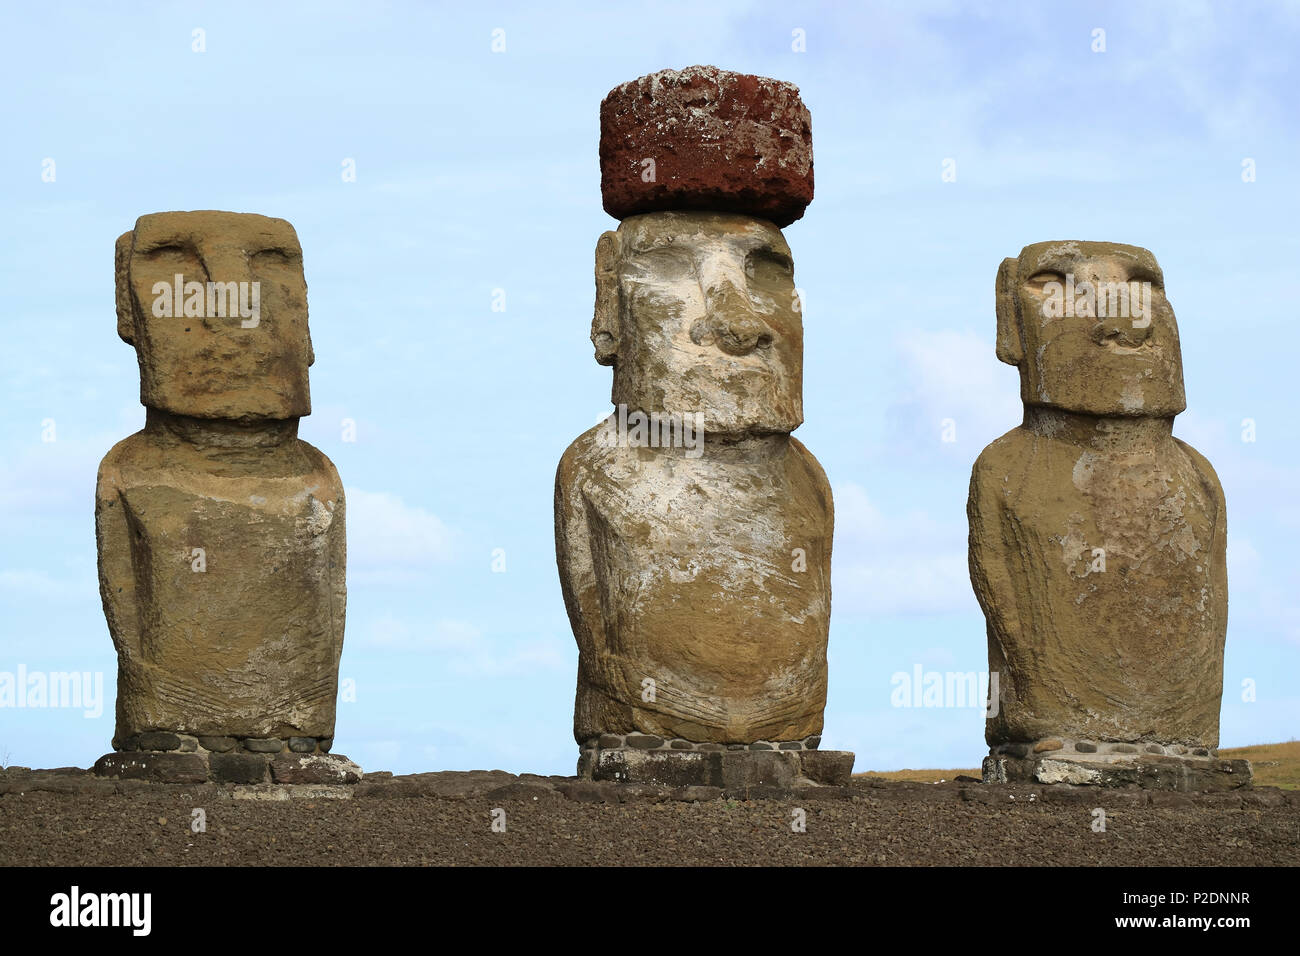 Three of fifteen huge Moai statues of Ahu Tongariki on Easter Island, Chile, South America - Stock Image